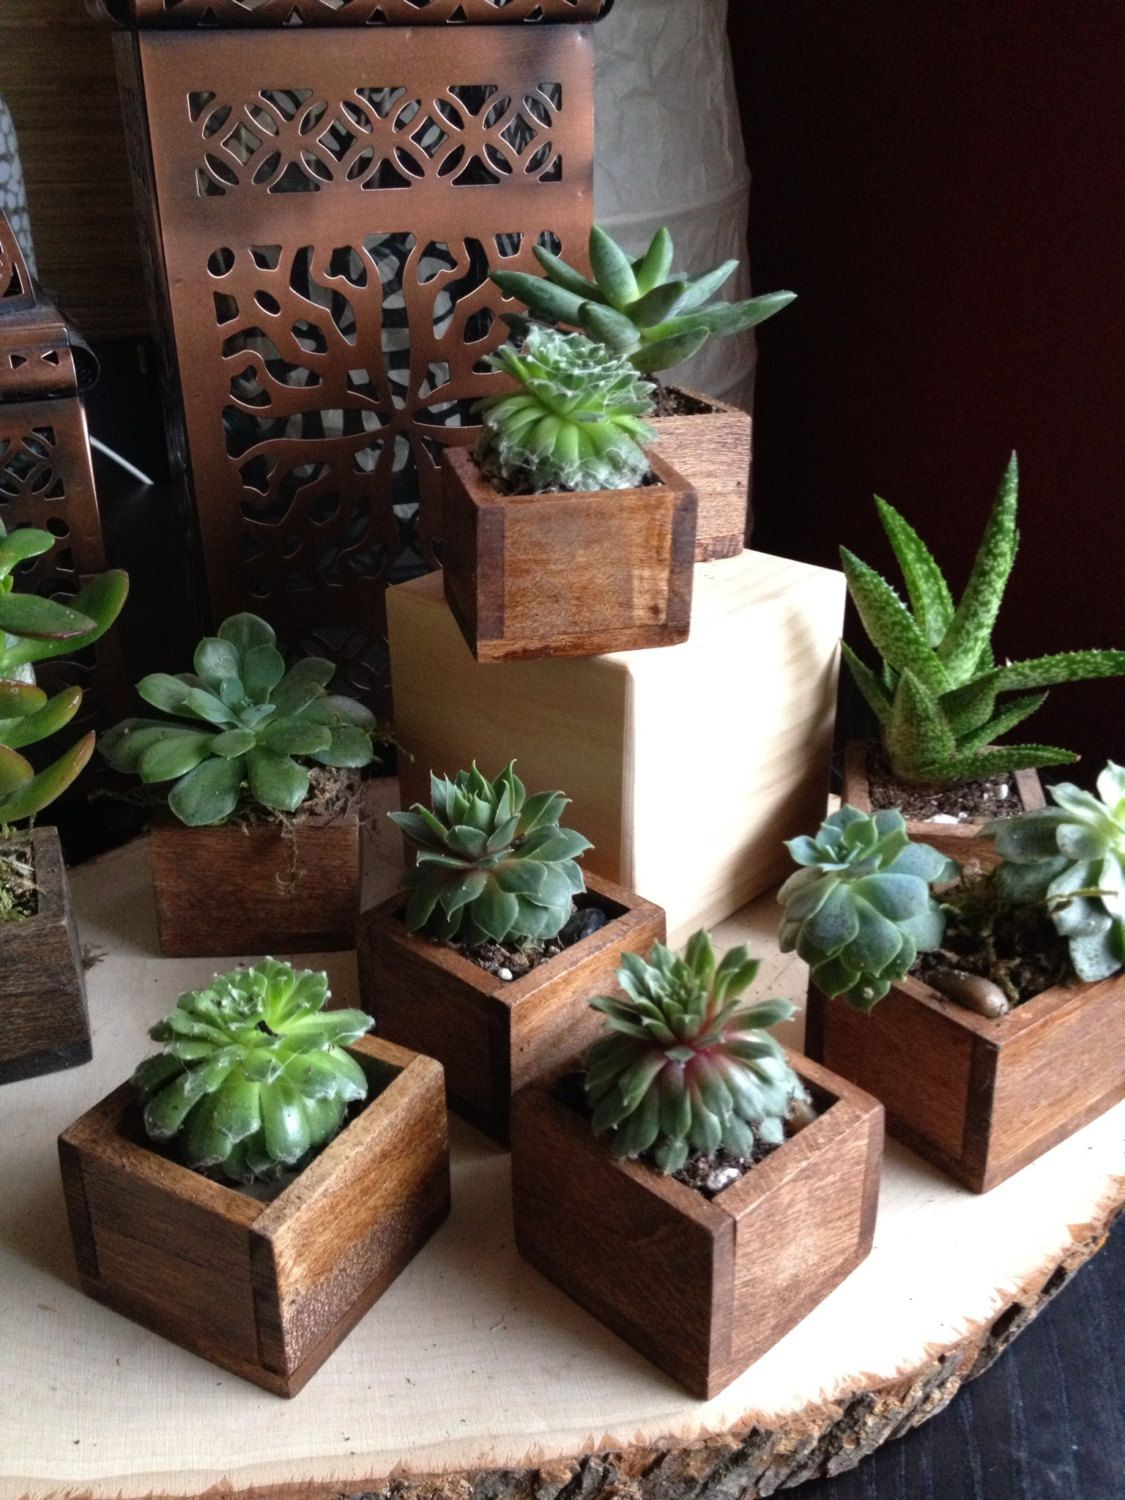 10 Succulents In Tiny Wooden Boxes Stained Chestnut Expresso Or White For The Cutest Gifts Home Dec Plant Display Ideas Succulents Diy Wood Succulent Planter